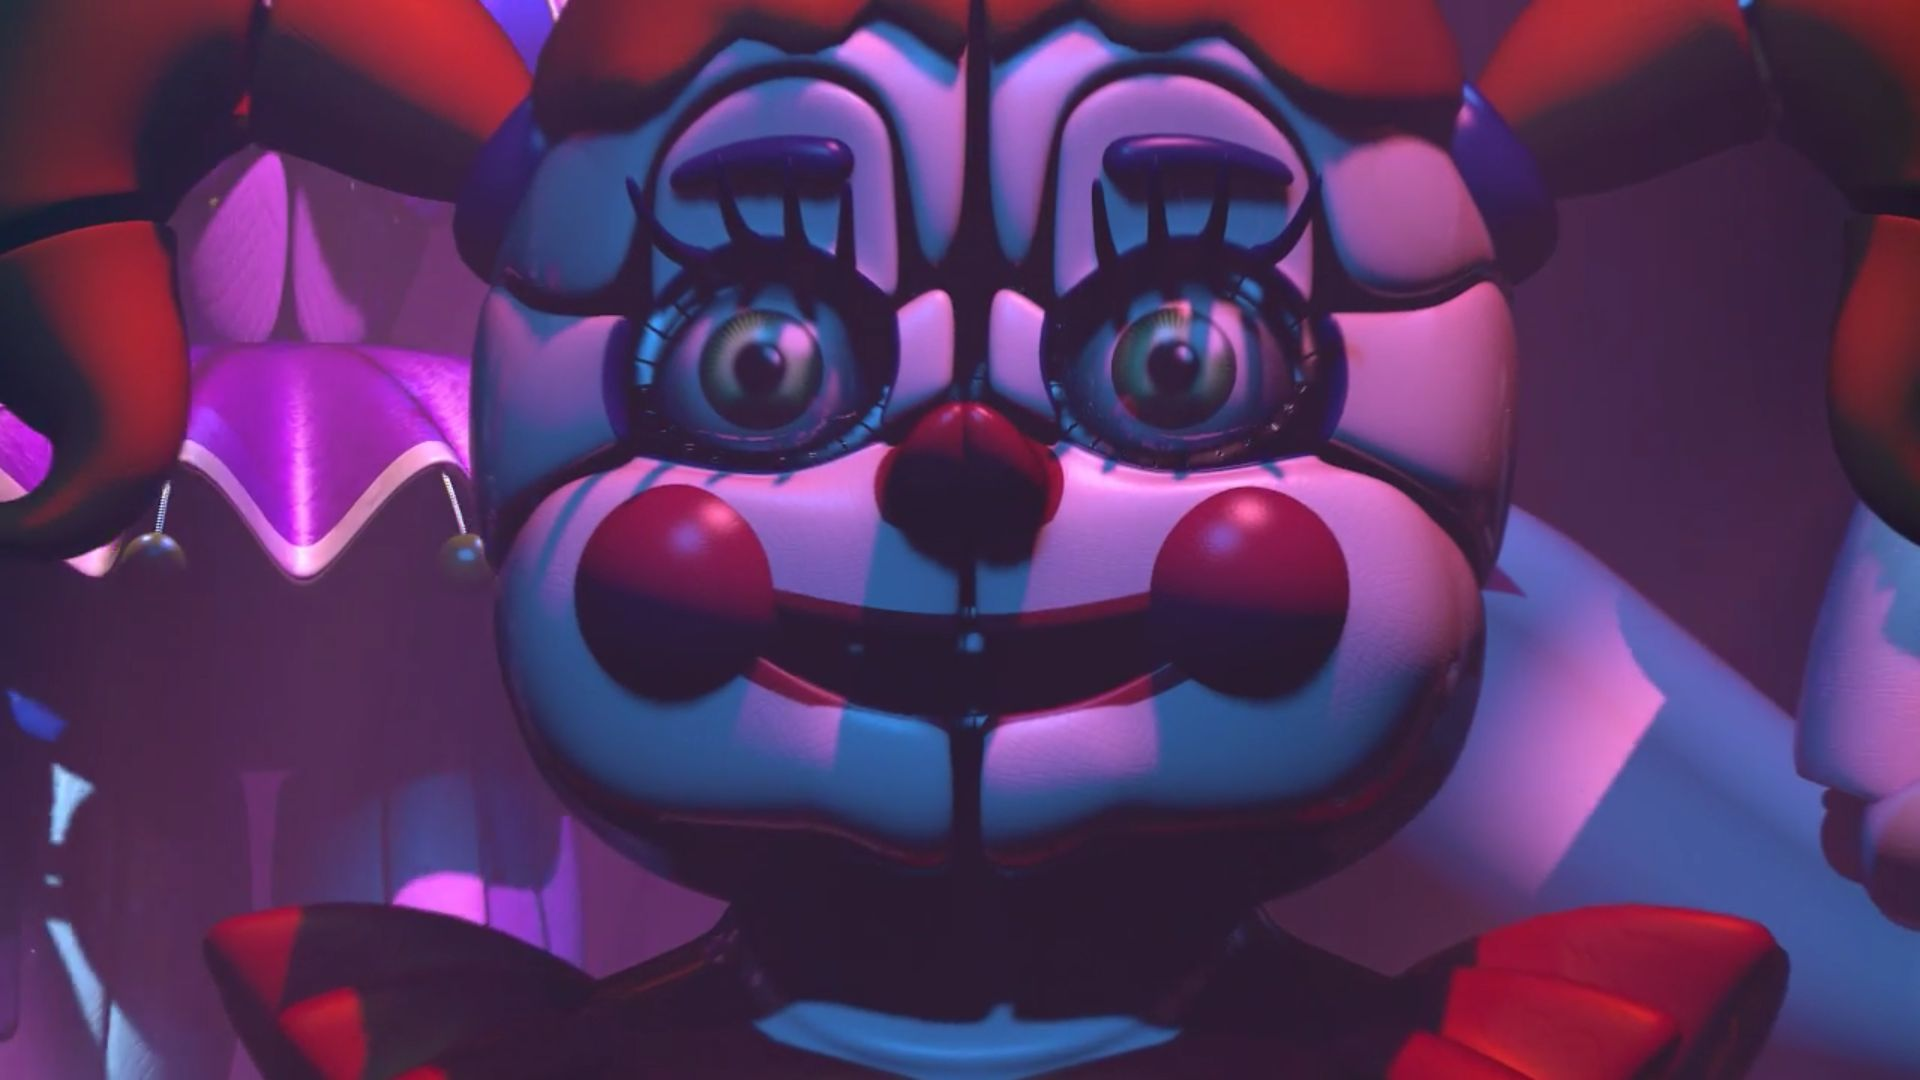 Five Nights at Freddy's: 'Sister Location' Trailer Terrifies: 1428elm.com/2016/05/22/five-nights-at-freddys-sister-location...